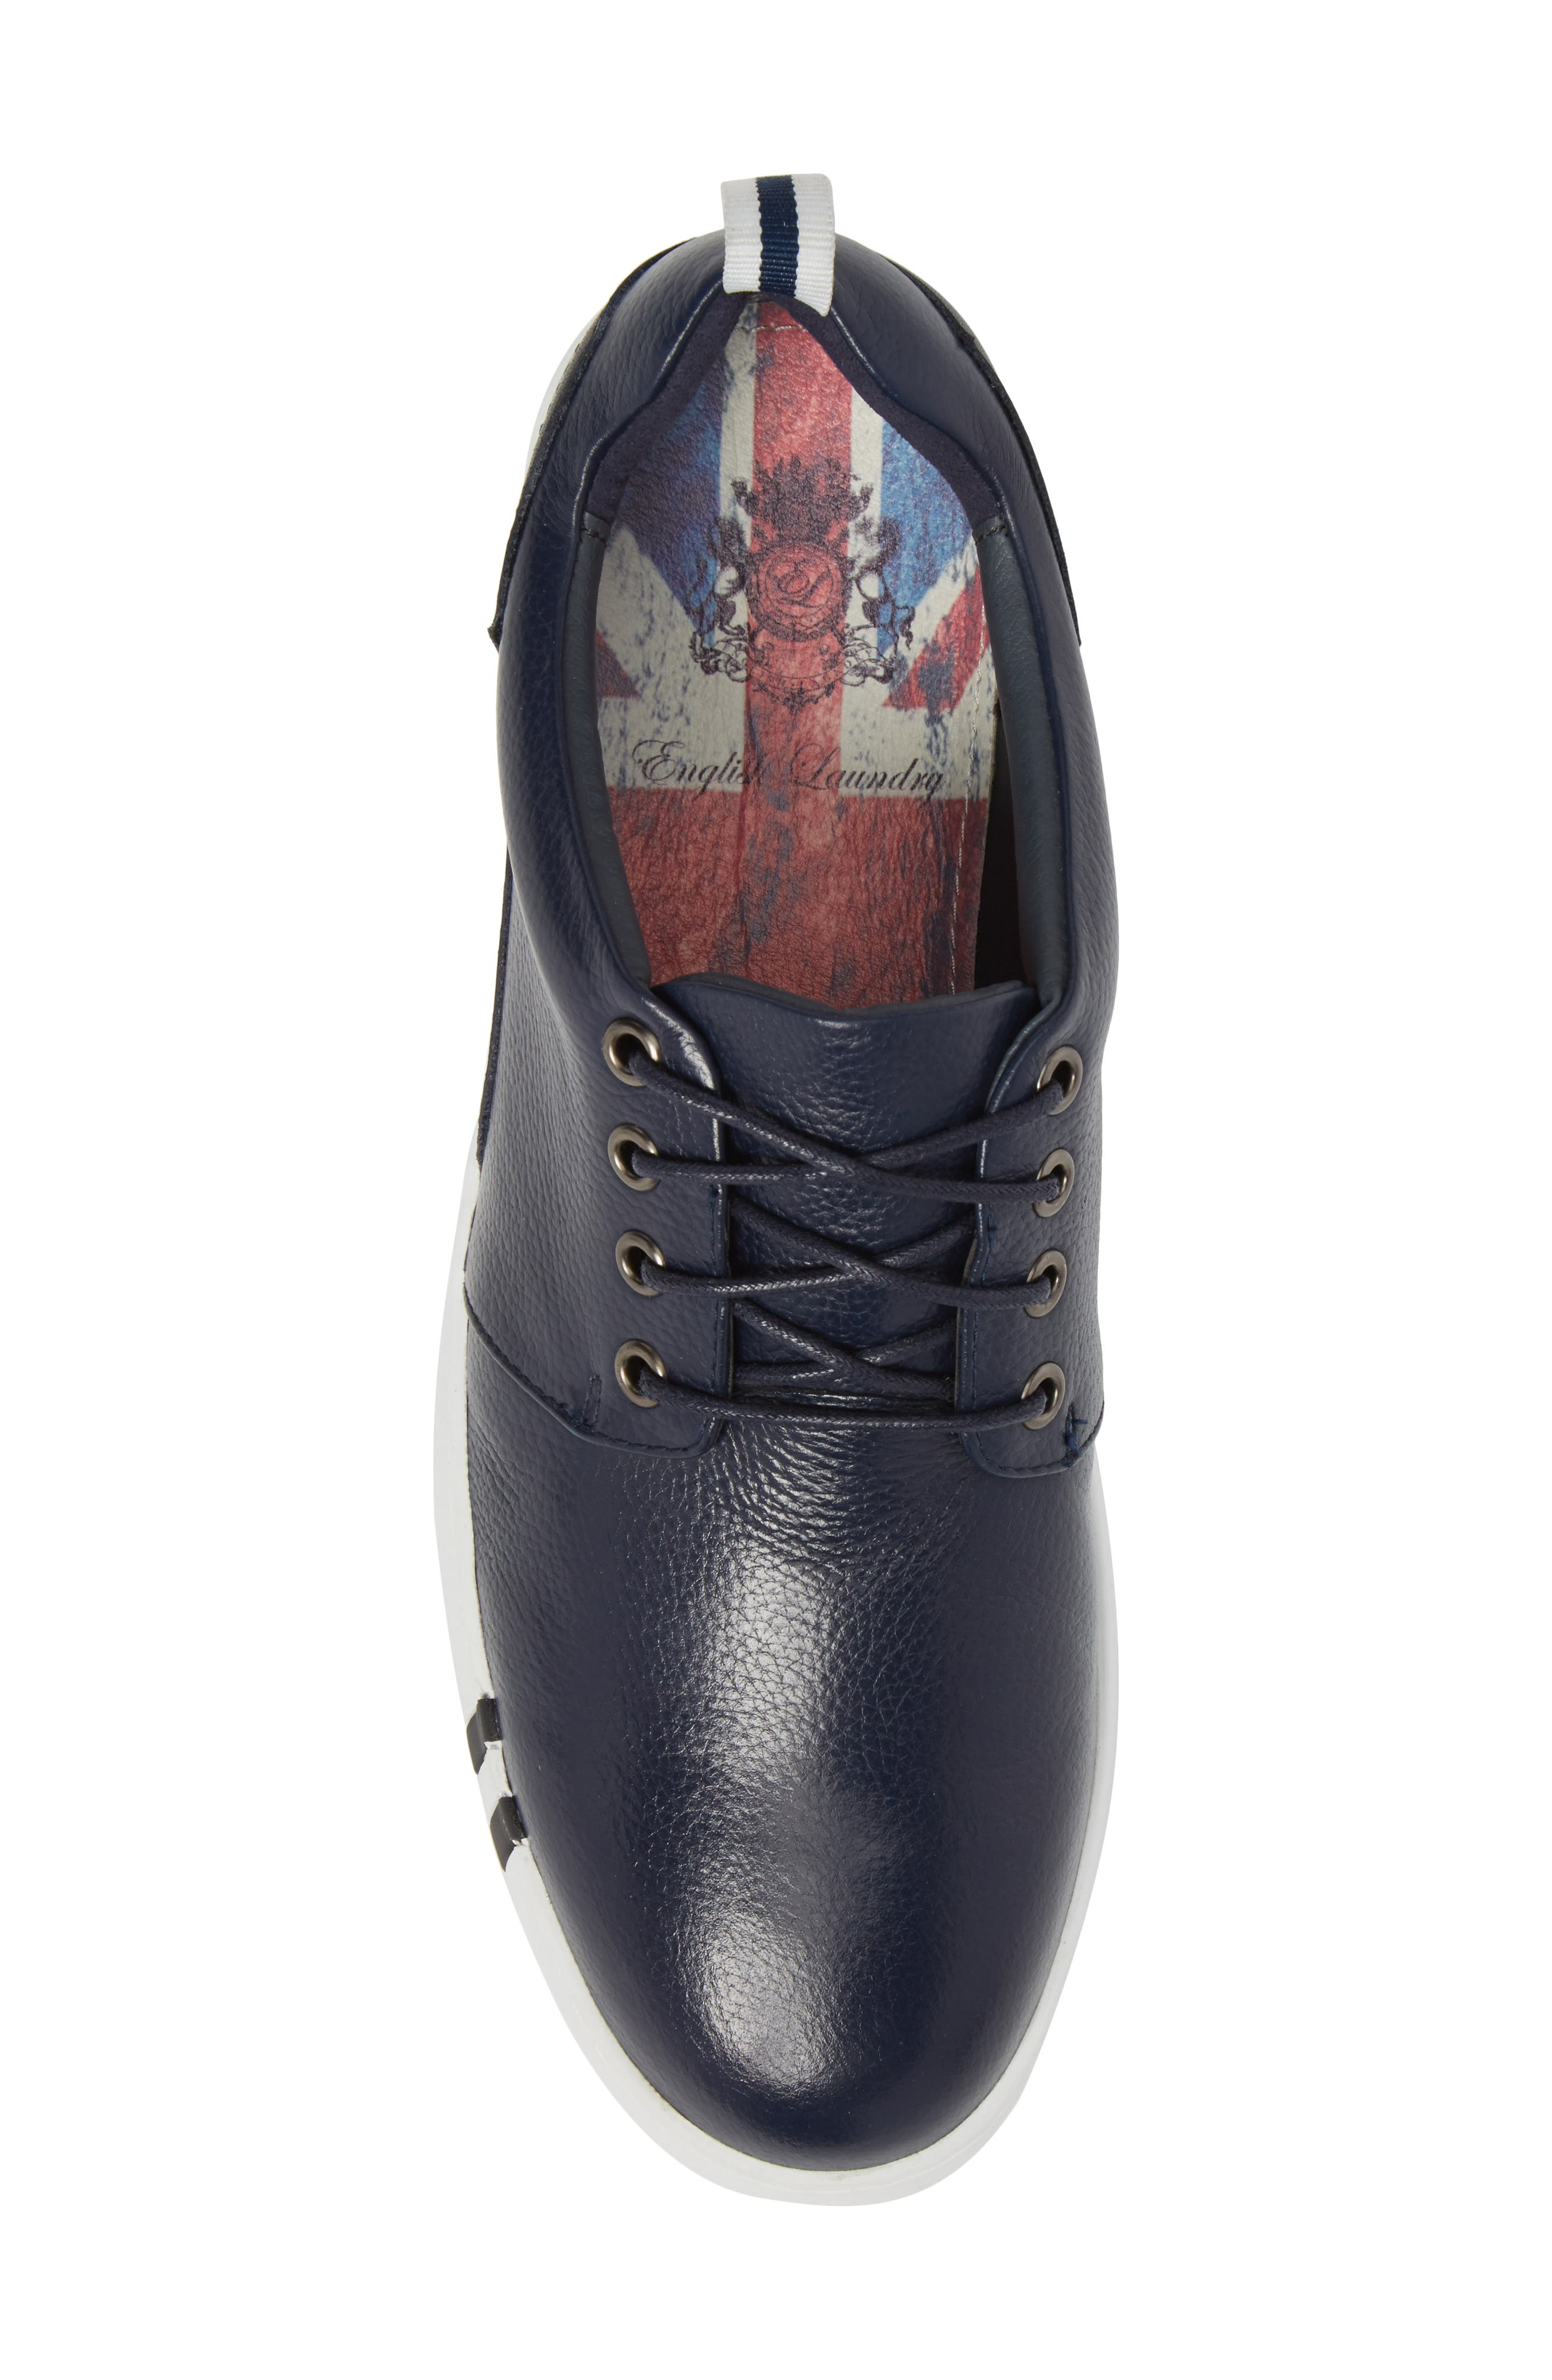 Kings Low Top Sneaker,                             Alternate thumbnail 5, color,                             Navy Leather